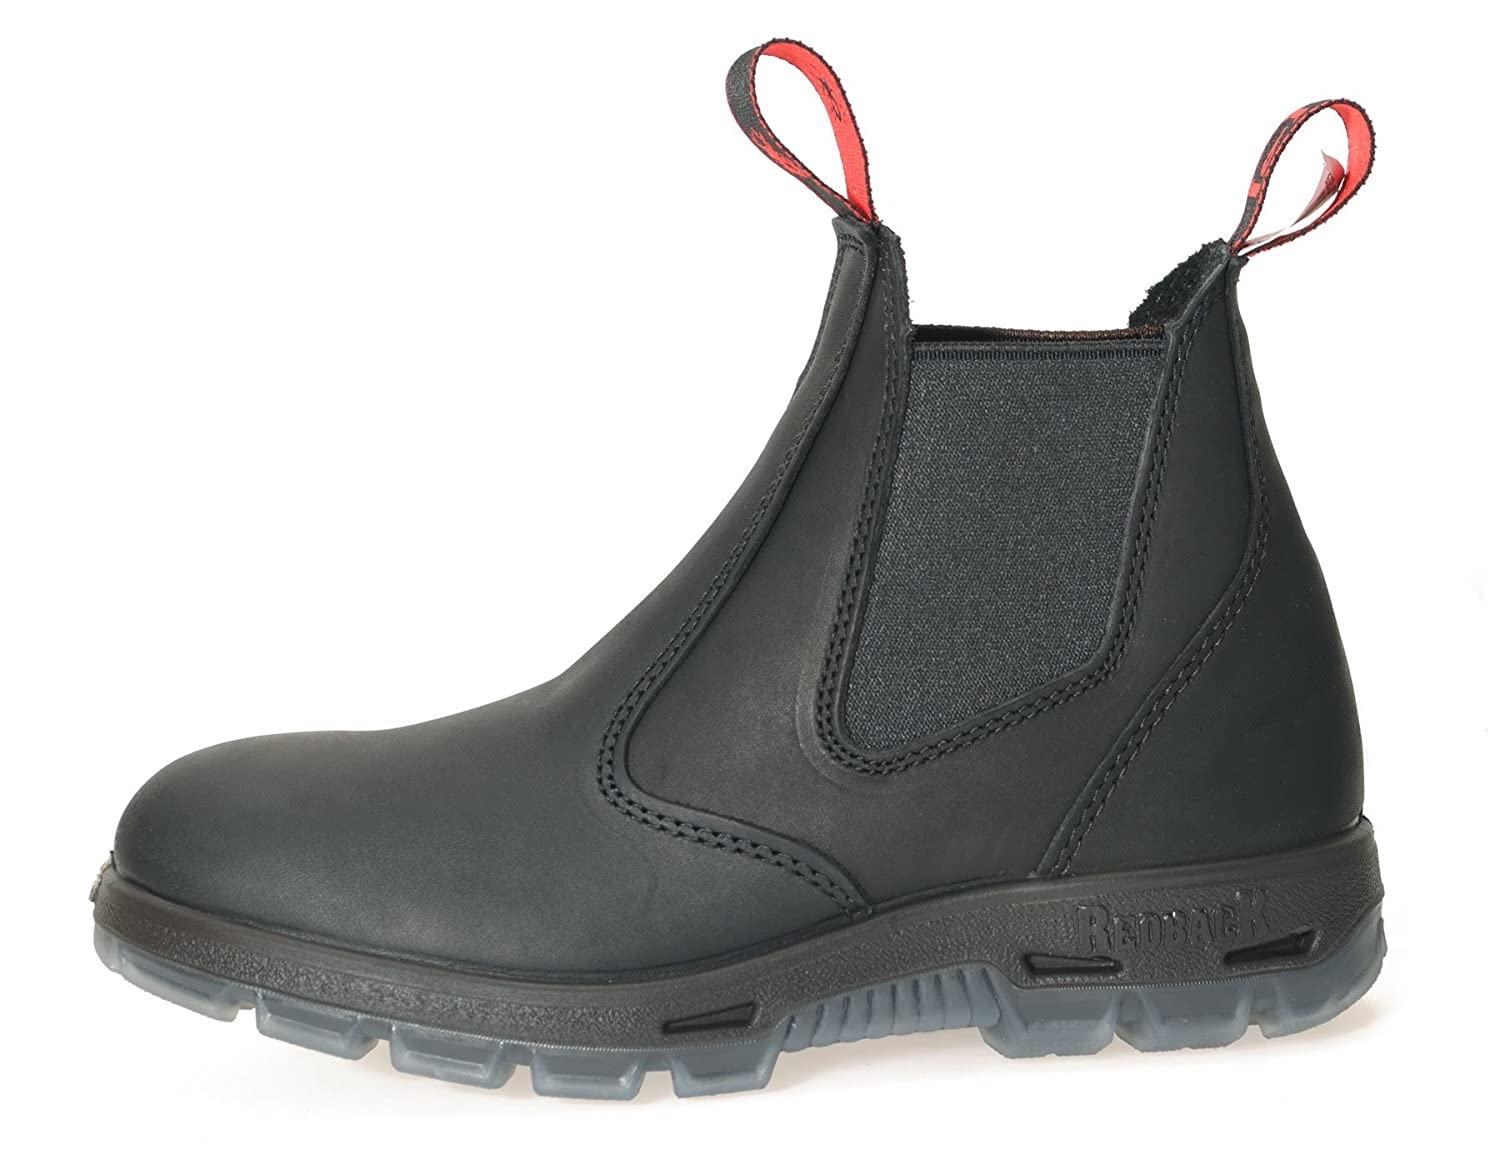 67340be90c0 Redback USBBK Australian Made Chelsea Safety Boots Black